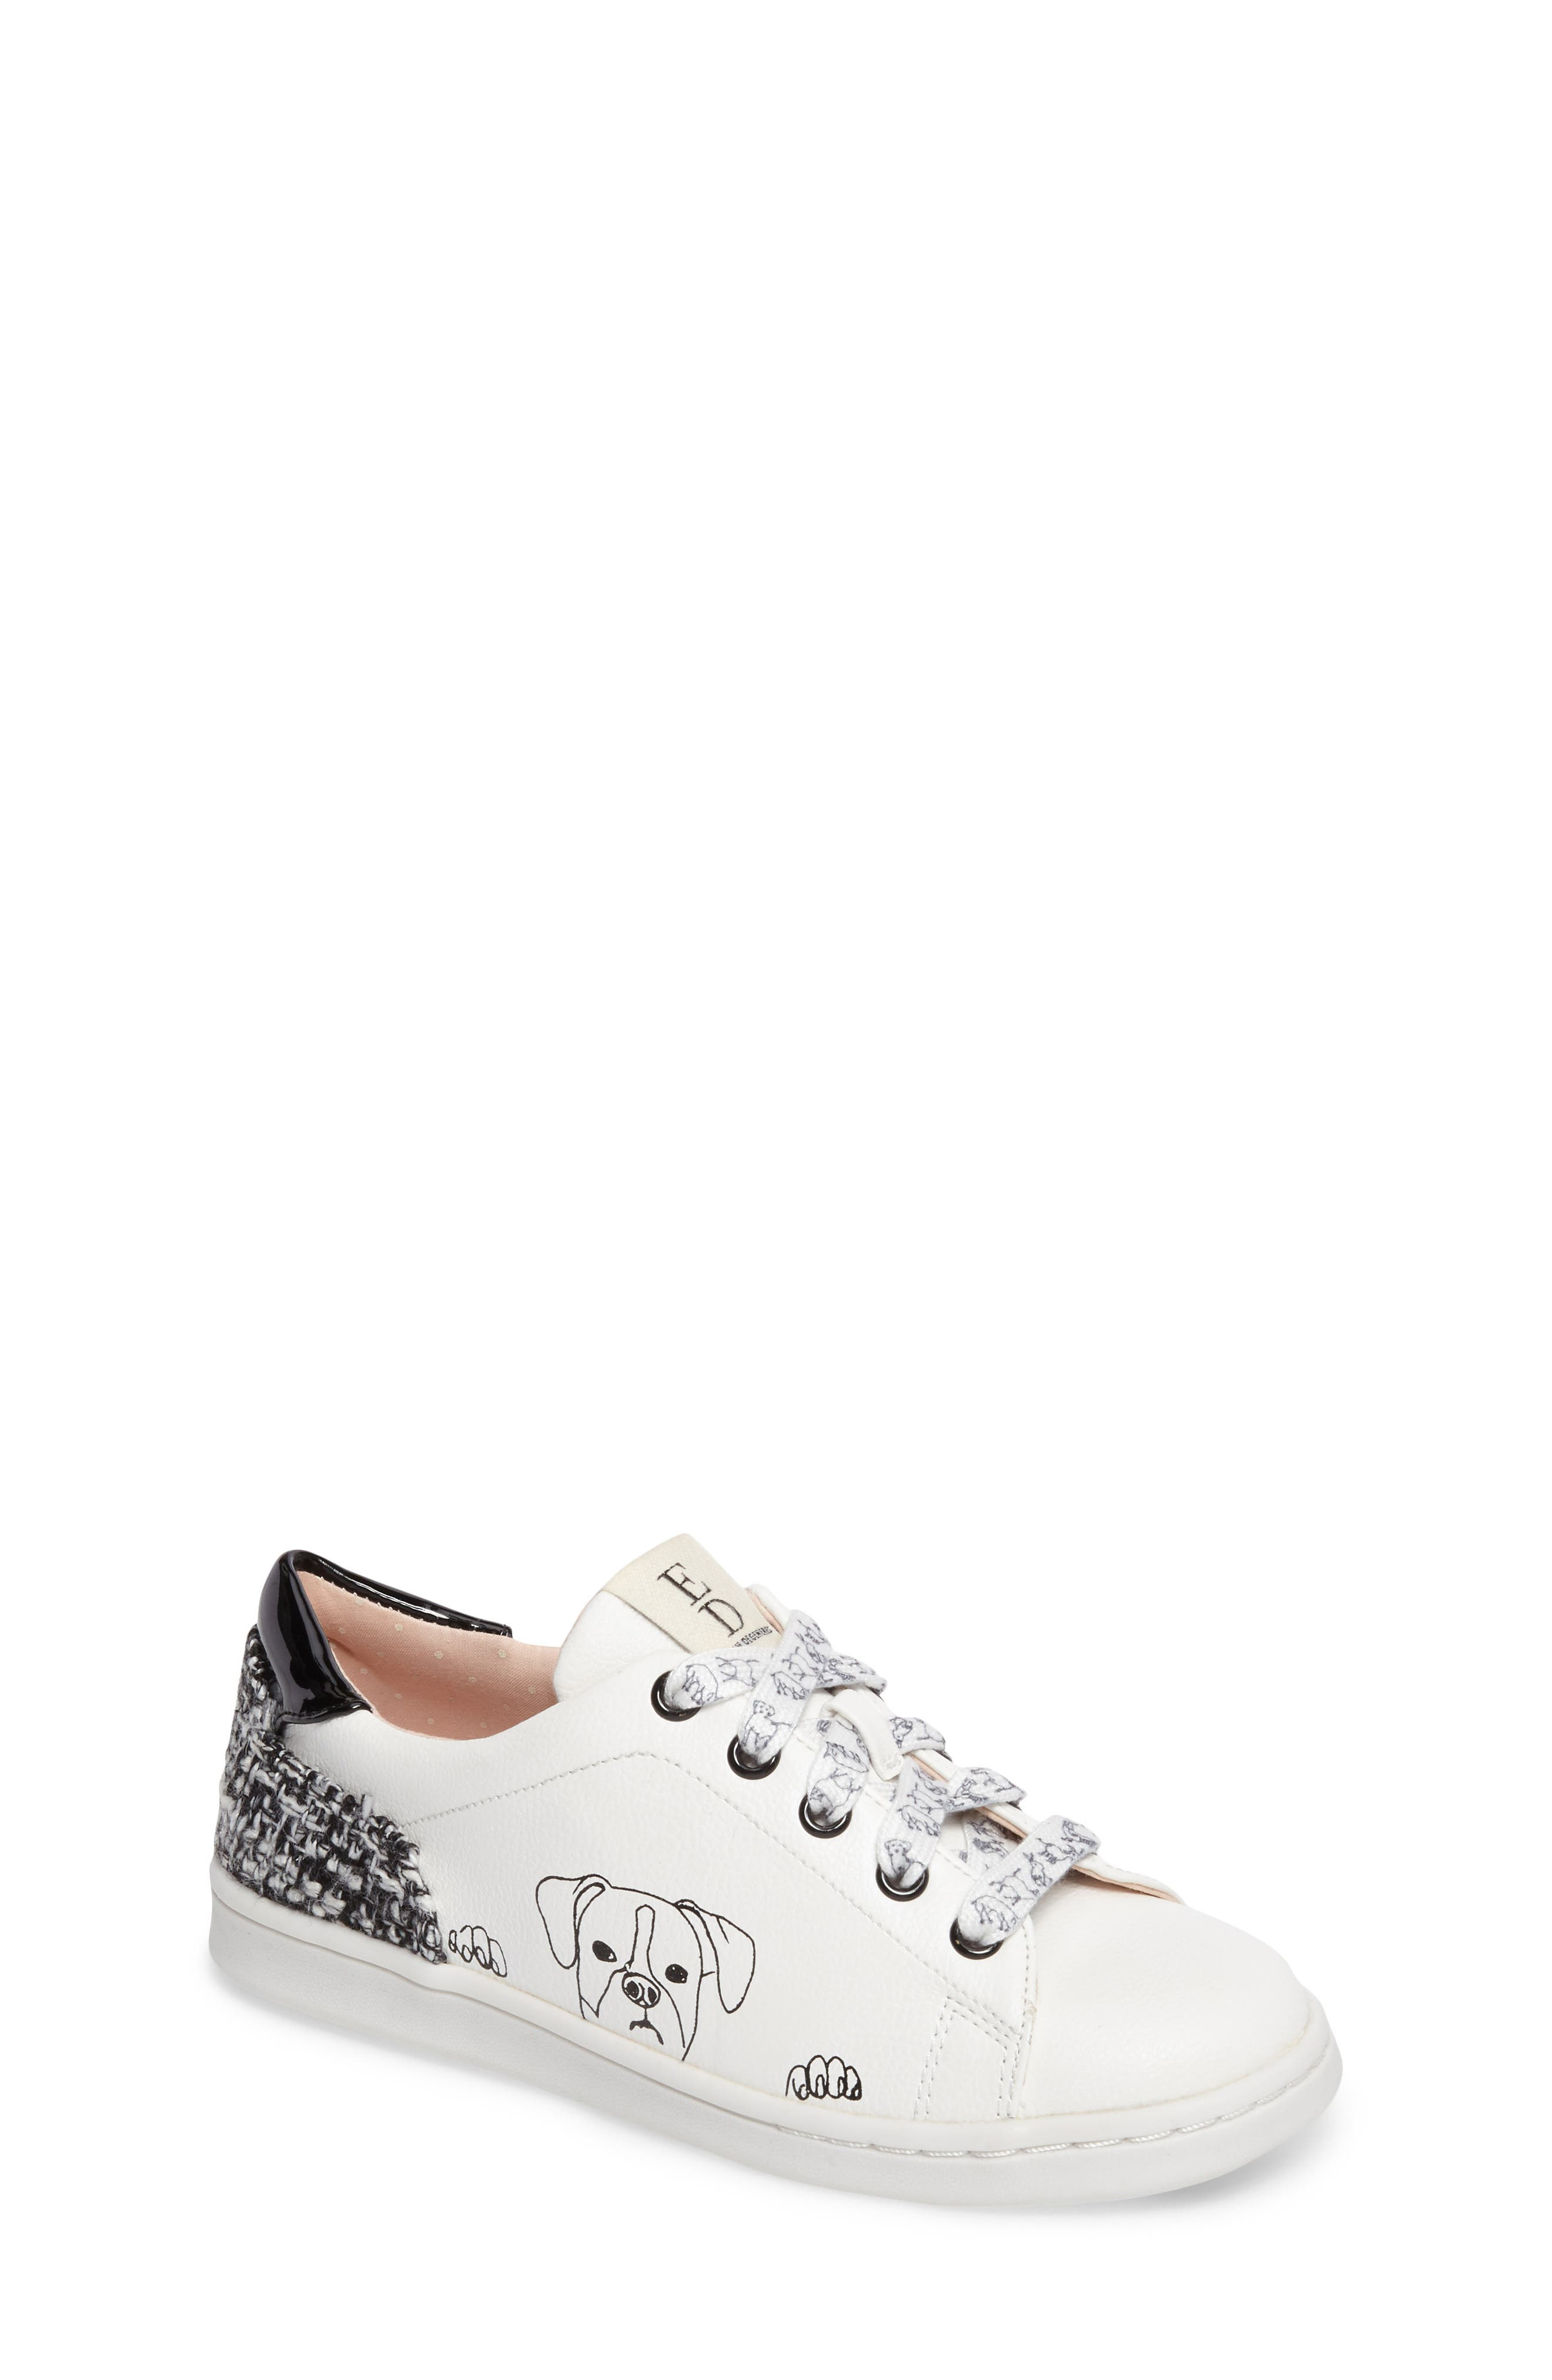 Chapapup Sneaker,                         Main,                         color, WHITE